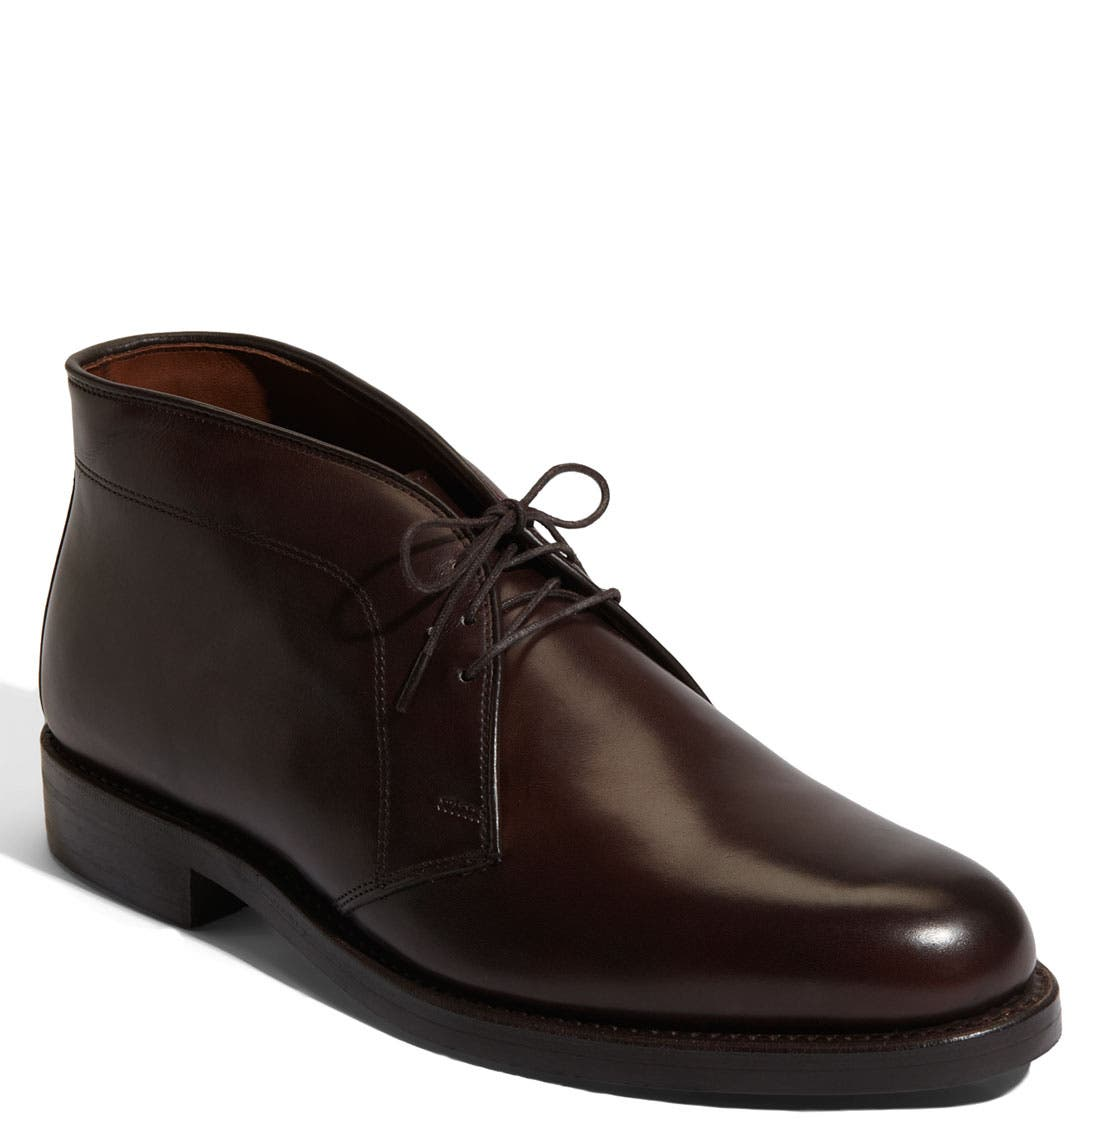 Main Image - Allen Edmonds 'Malvern' Chukka Boot (Online Only)